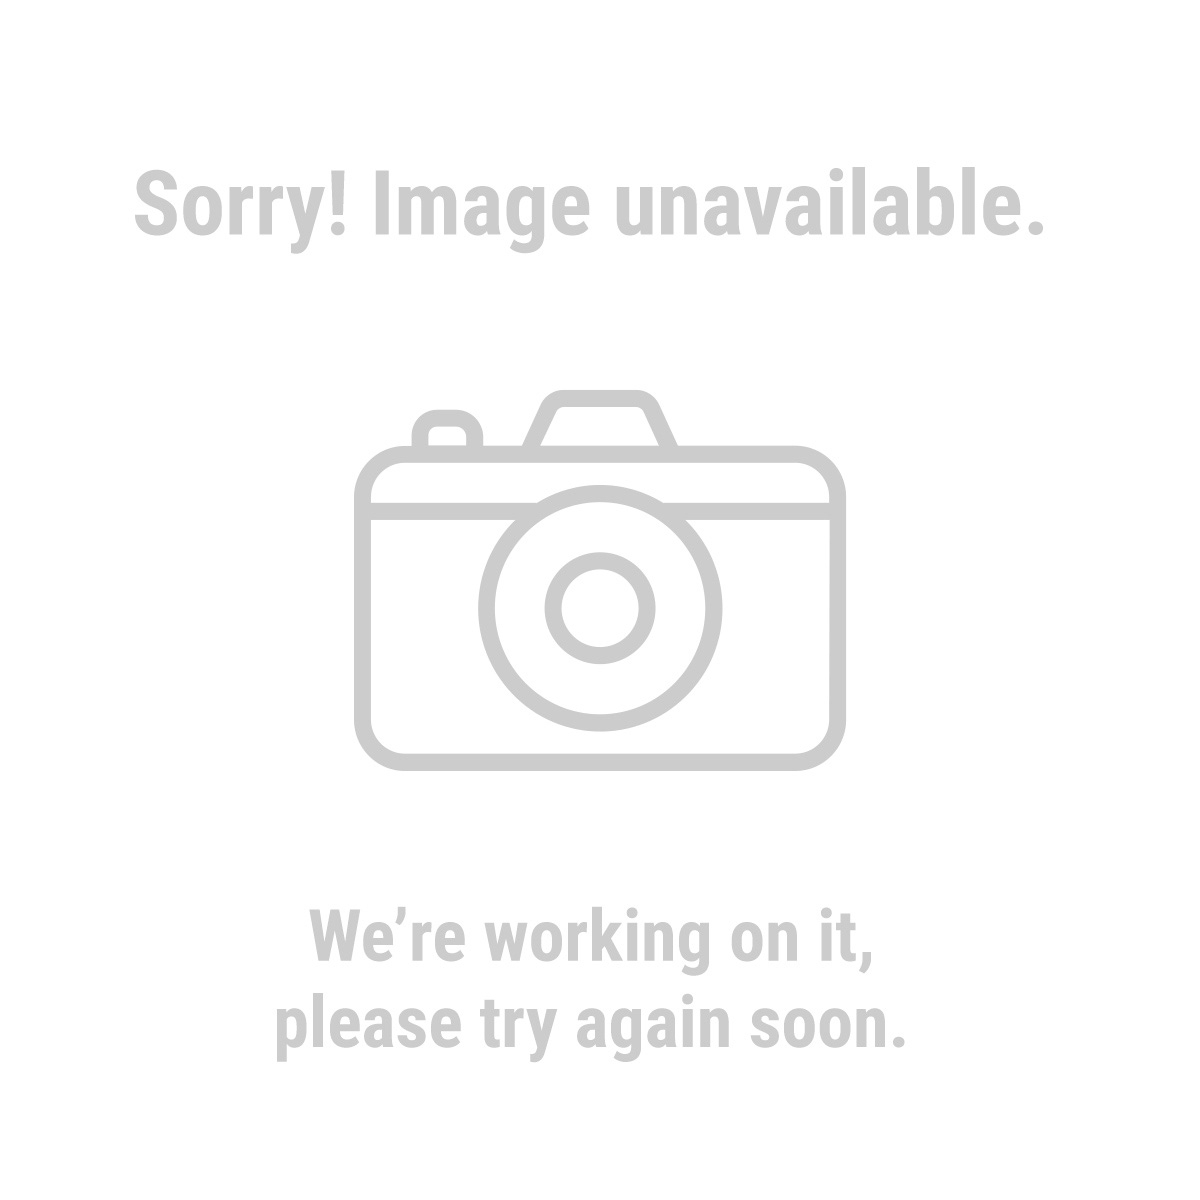 Pacific Hydrostar 68418 Submersible Waterfall Pump